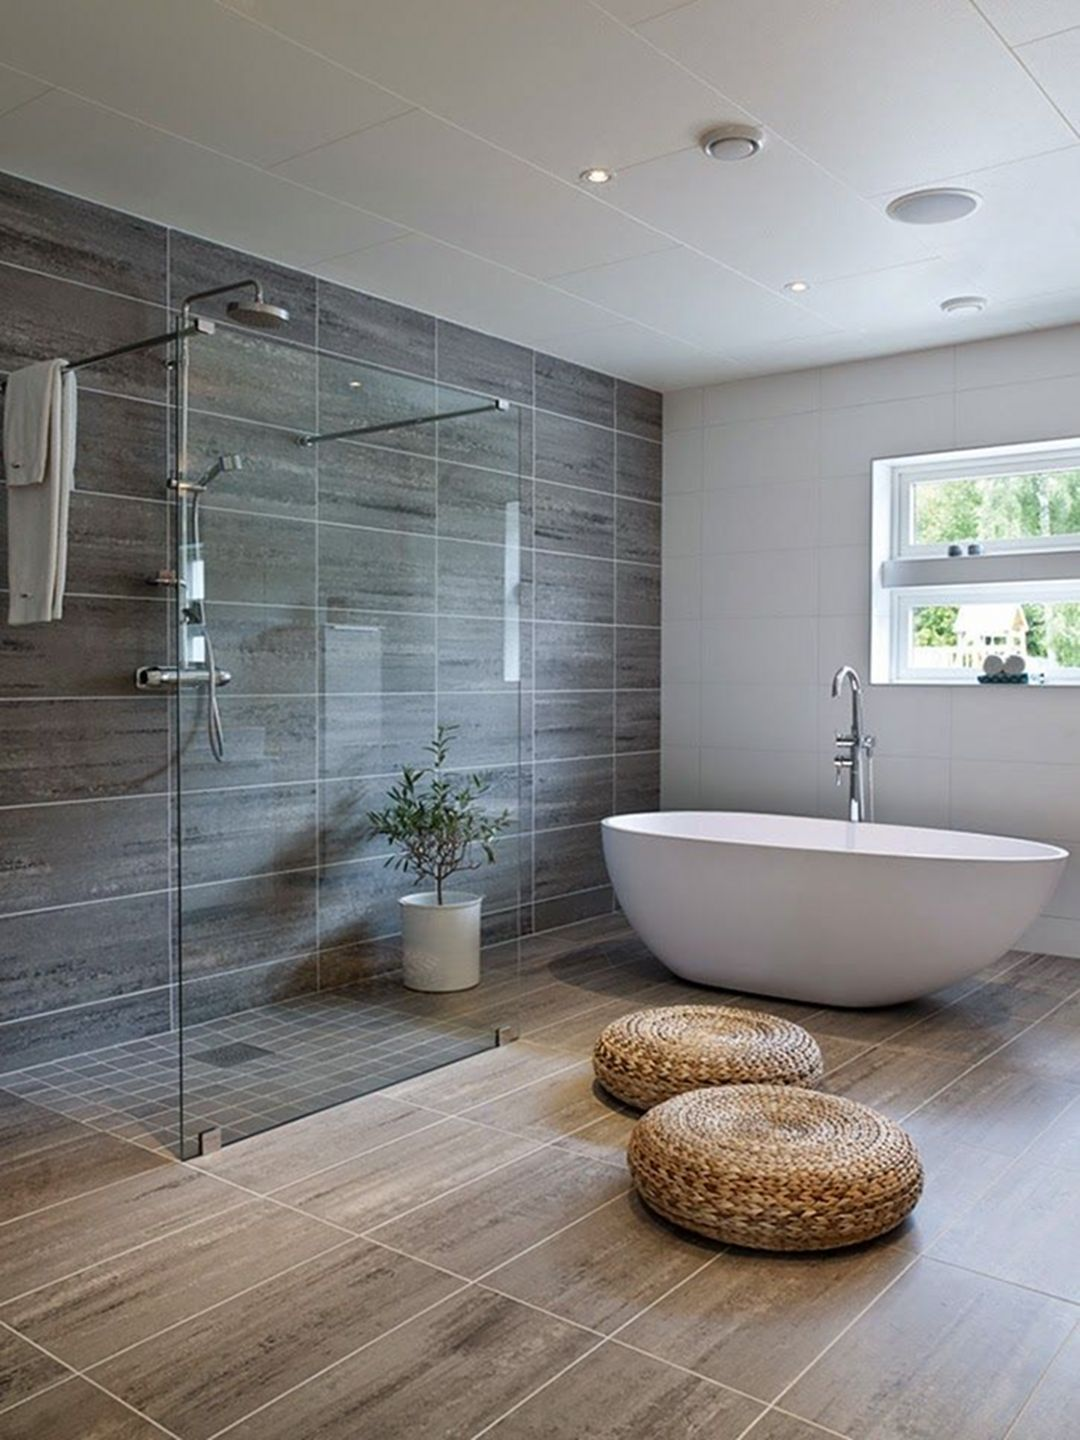 30 Amazing Small Bathroom Wall Tile Ideas To Inspire You ... on Amazing Small Bathrooms  id=26751